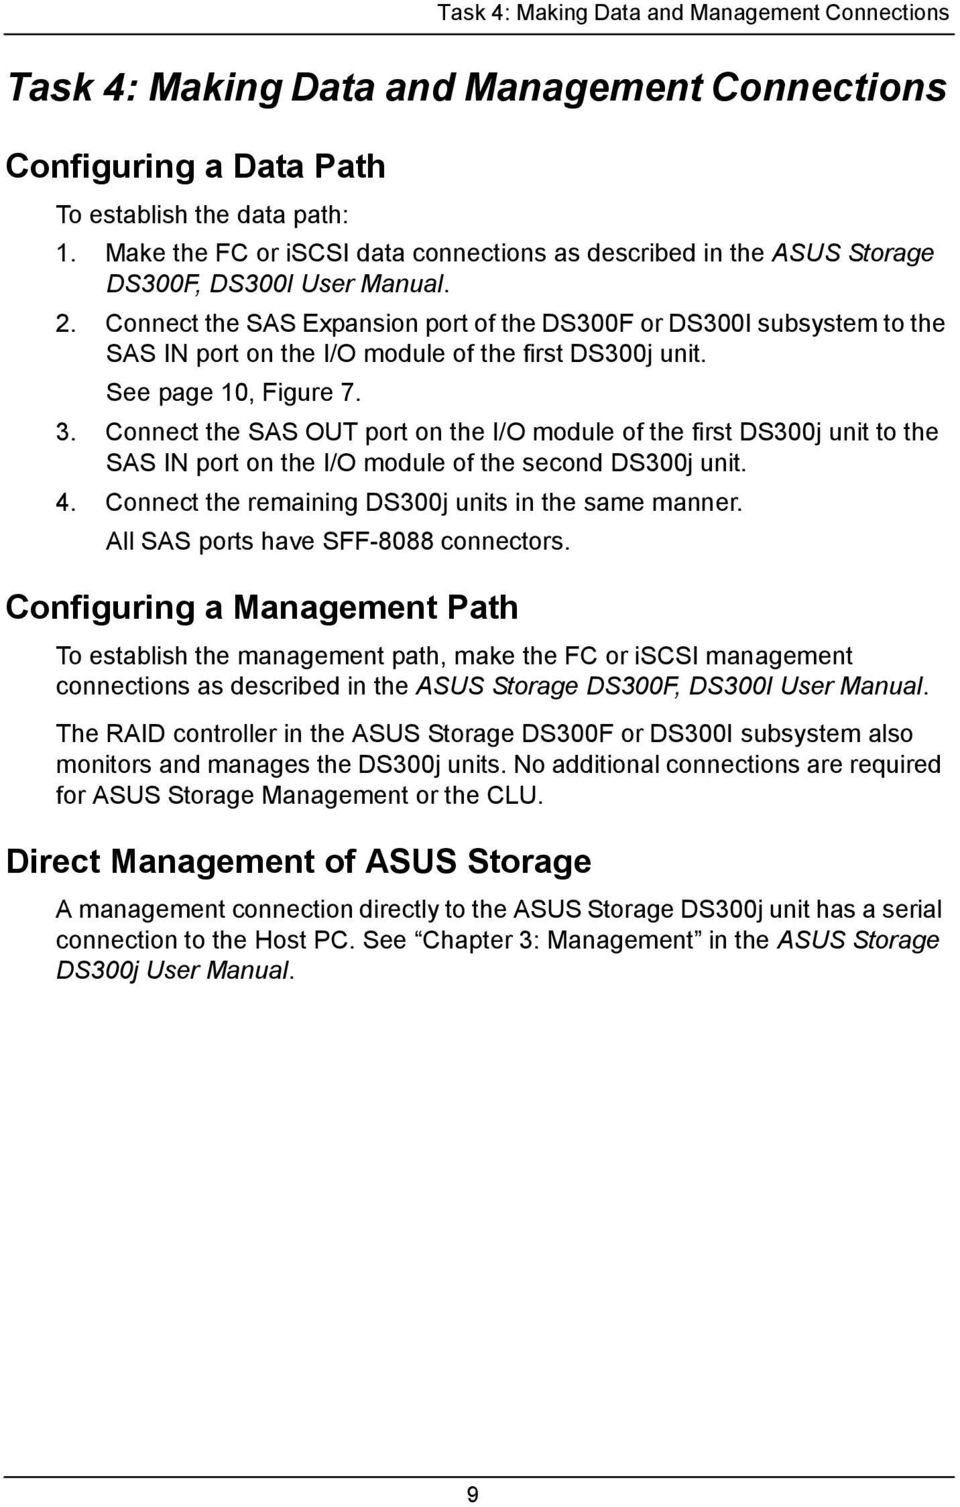 Connect the SAS Expansion port of the DS300F or DS300I subsystem to the SAS IN port on the I/O module of the first DS300j unit. See page 10, Figure 7. 3.